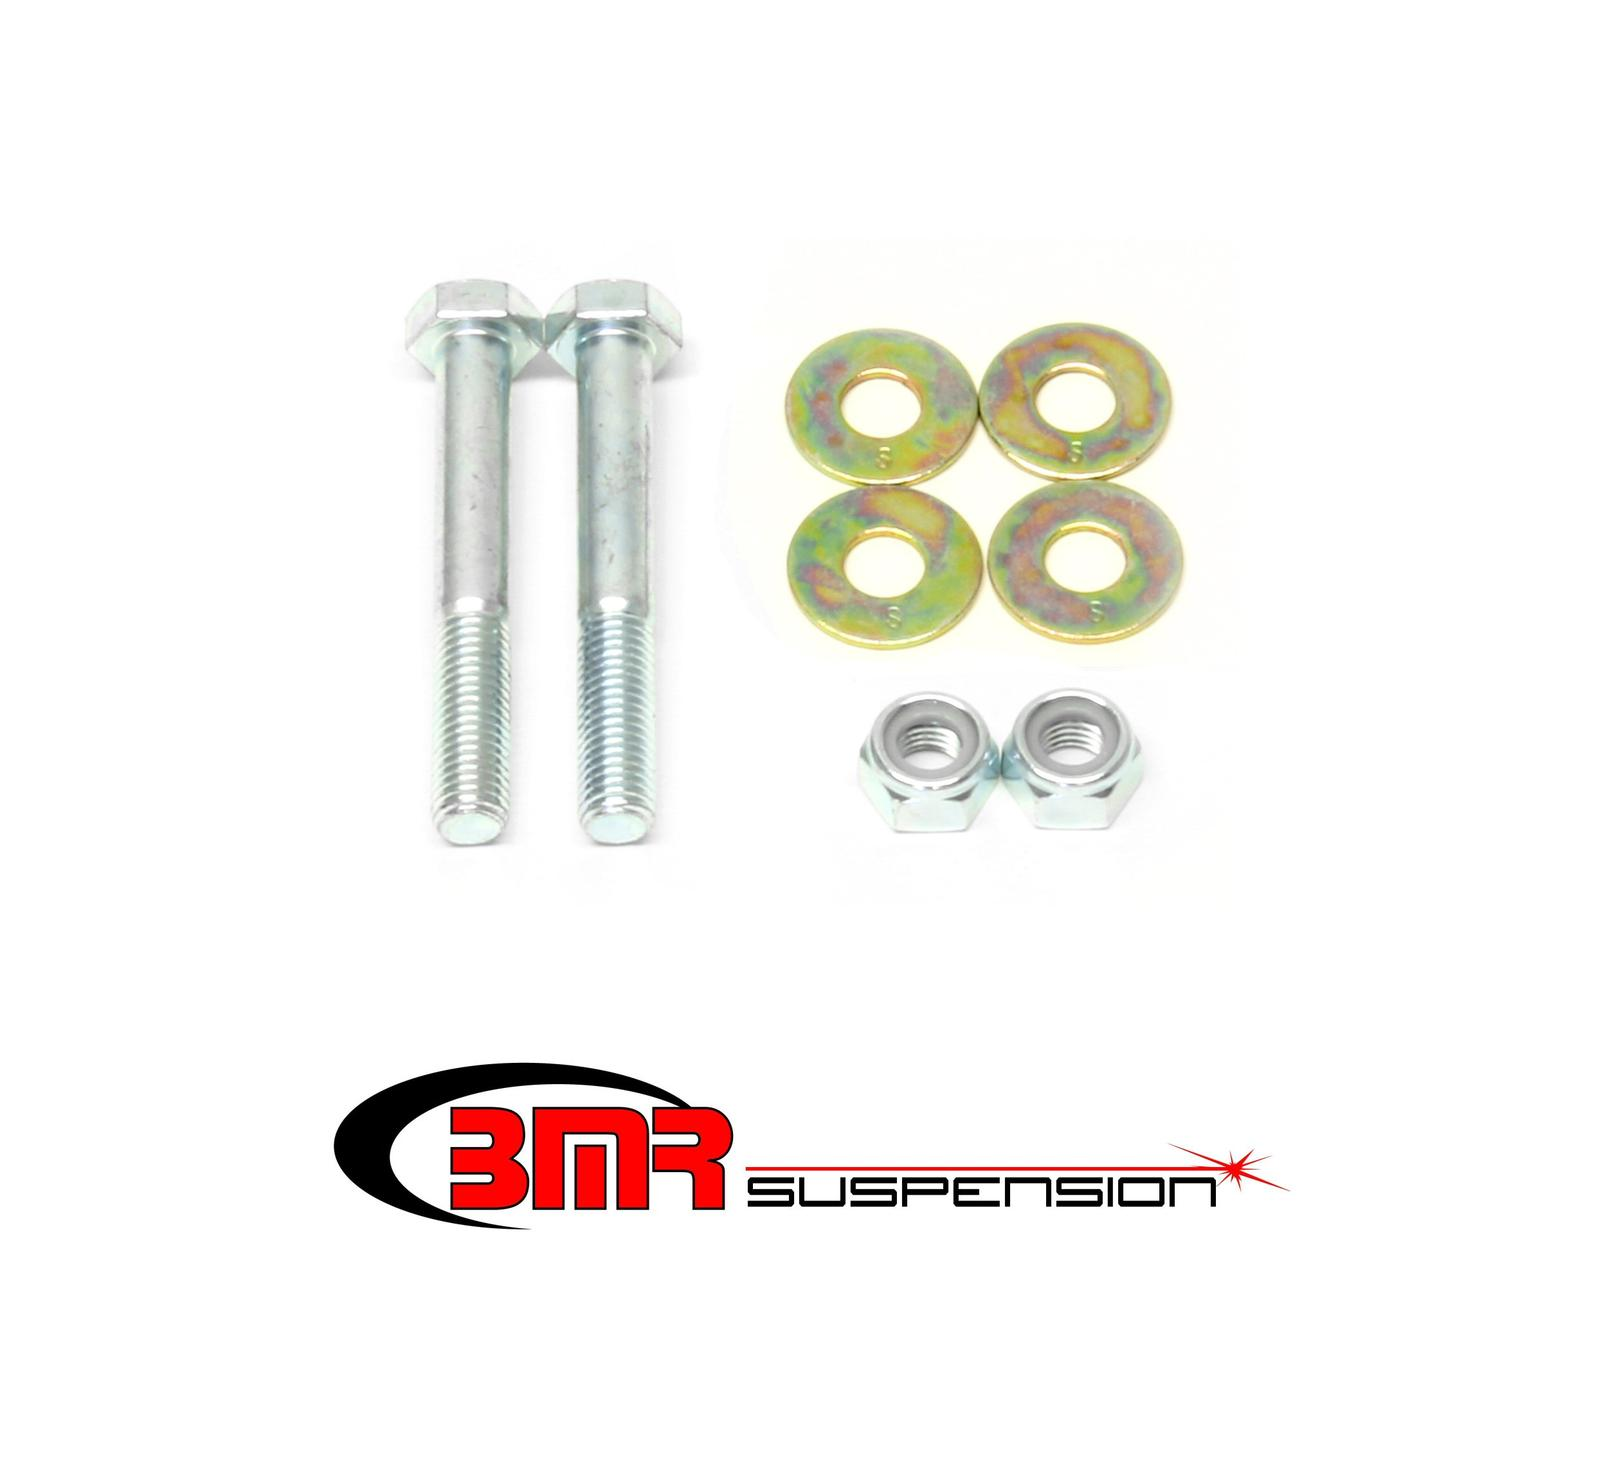 2005-2015 Ford Mustang GT BMR Suspension Front Lower Control Arm Hardware Kit